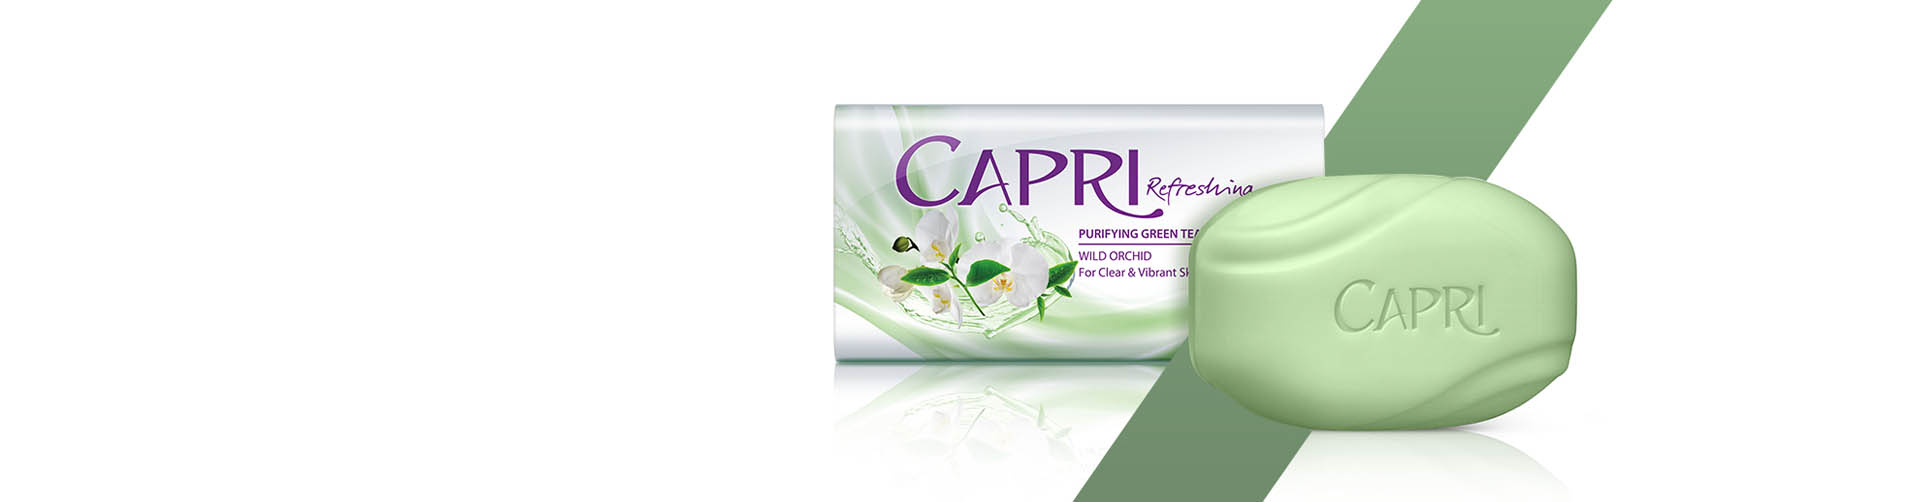 Capri Purifying Green Tea